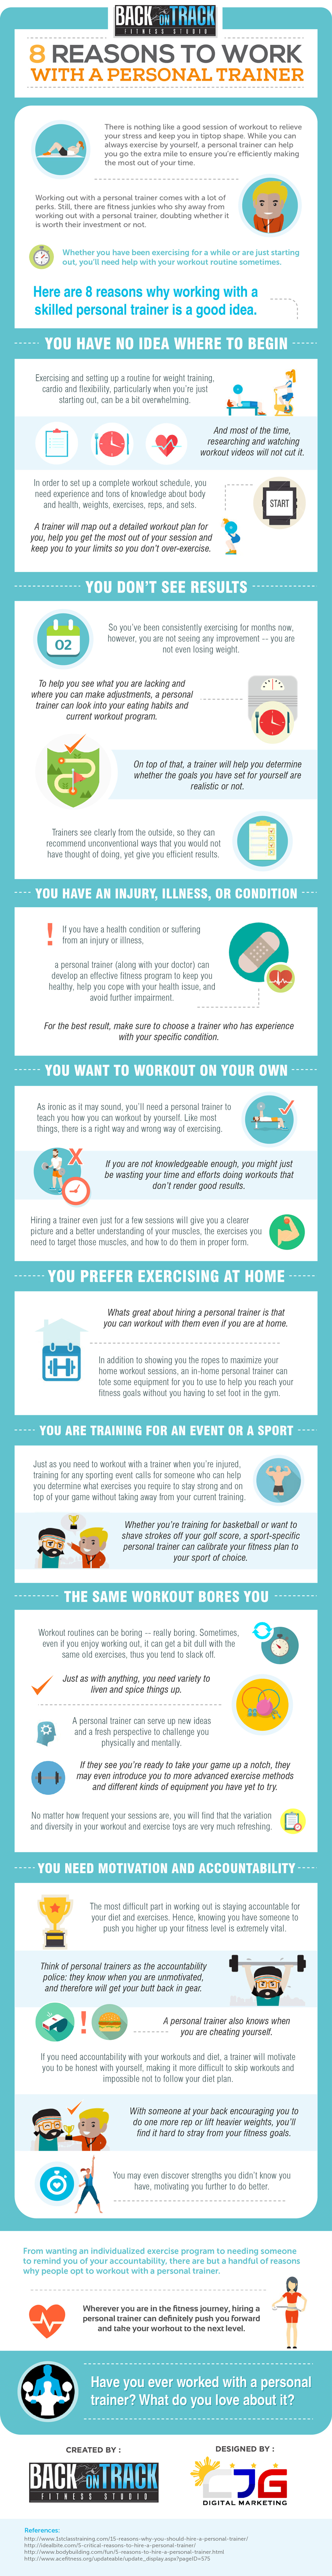 8 Reasons to Work With a Personal Trainer by Back On Track Fitness